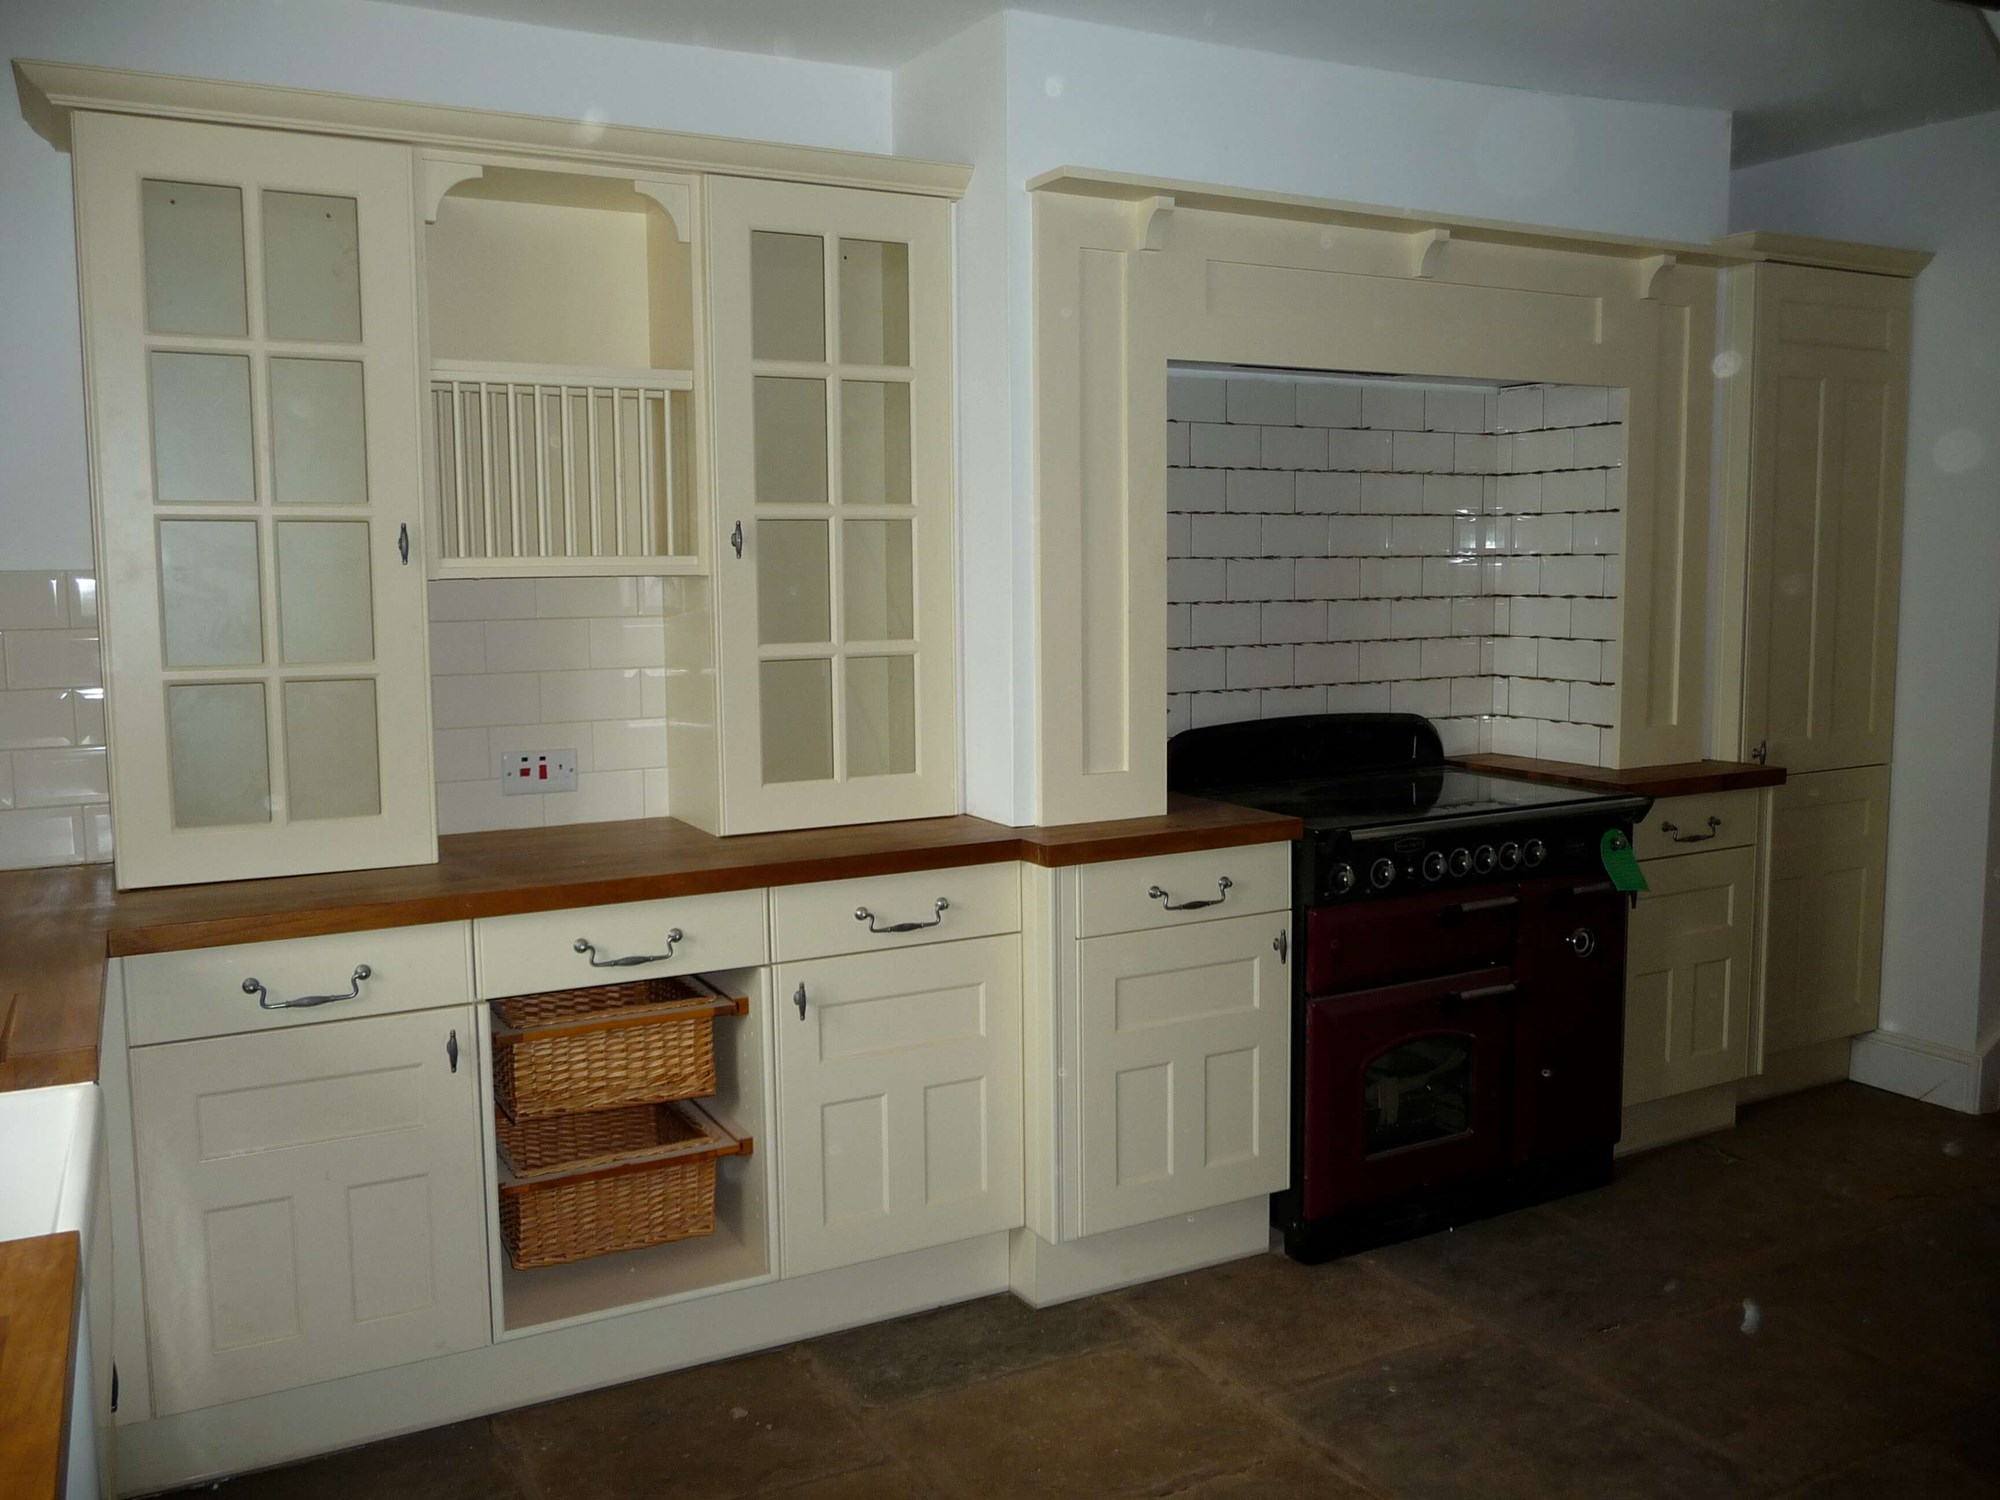 Kitchens M R Property Services south west limited